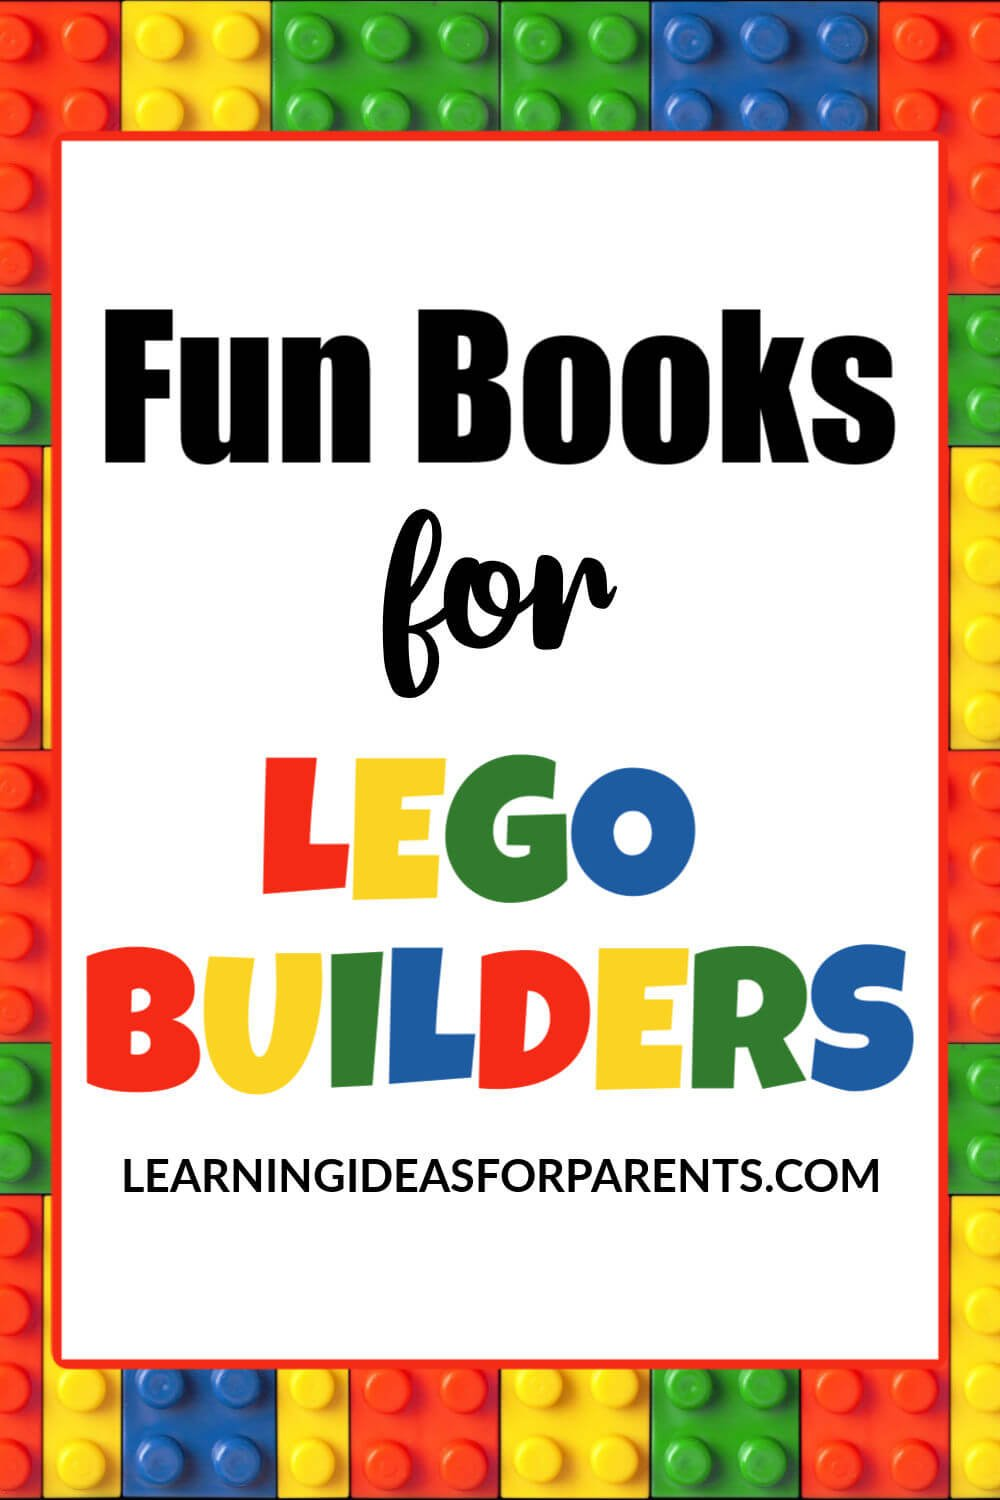 A list of fun books for LEGO builders.